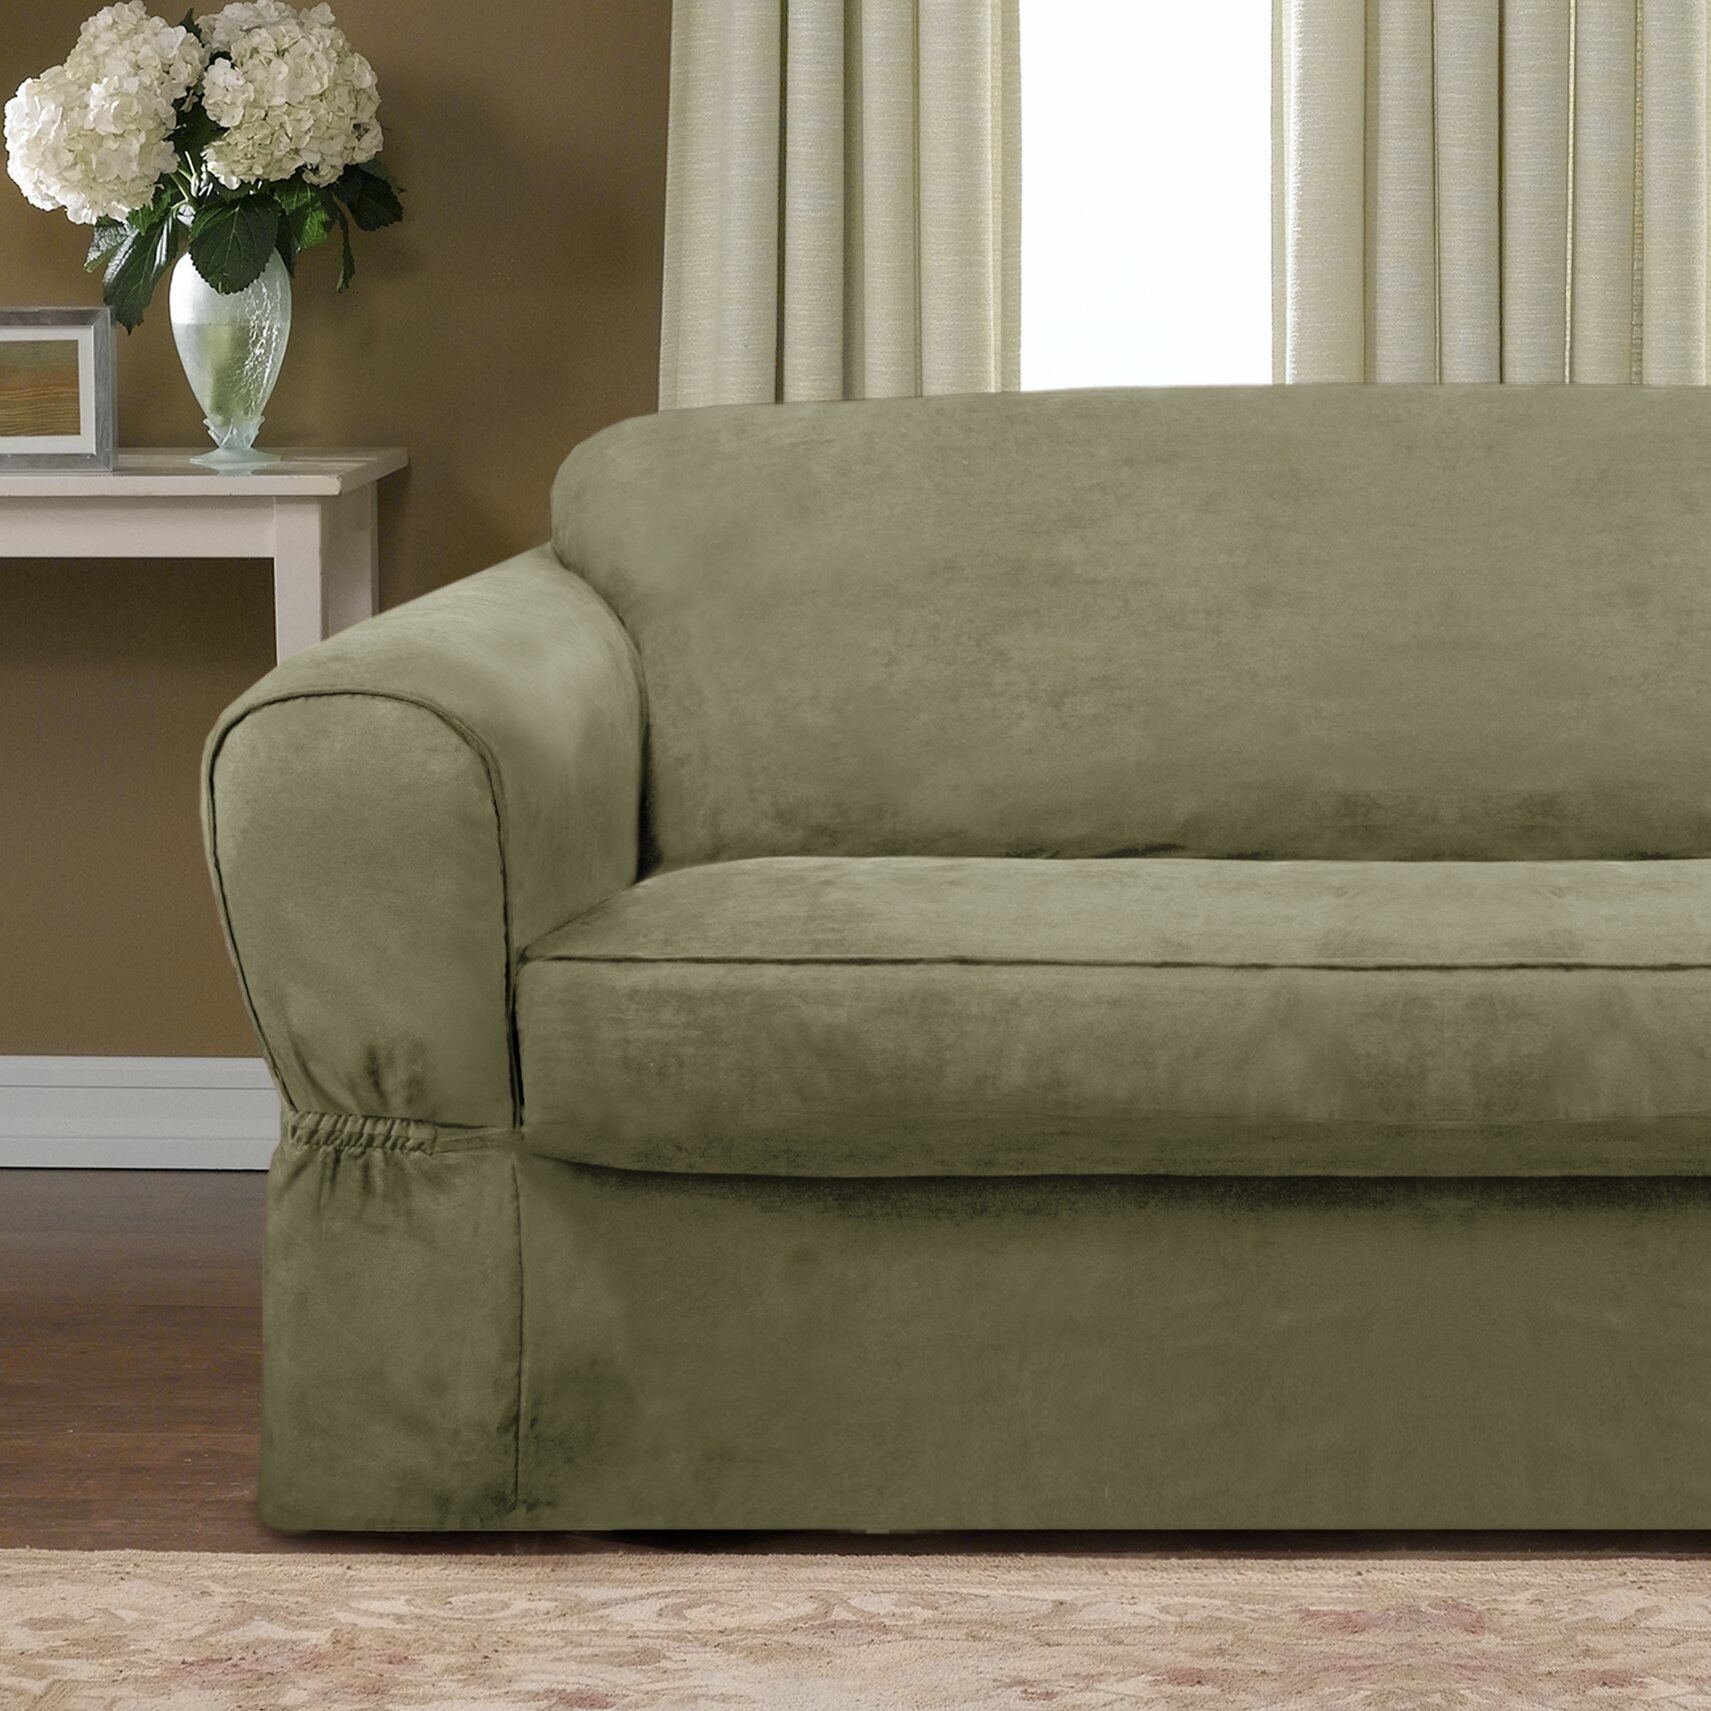 Maytex Piped Suede Separate Seat Sofa Slipcover Amp Reviews